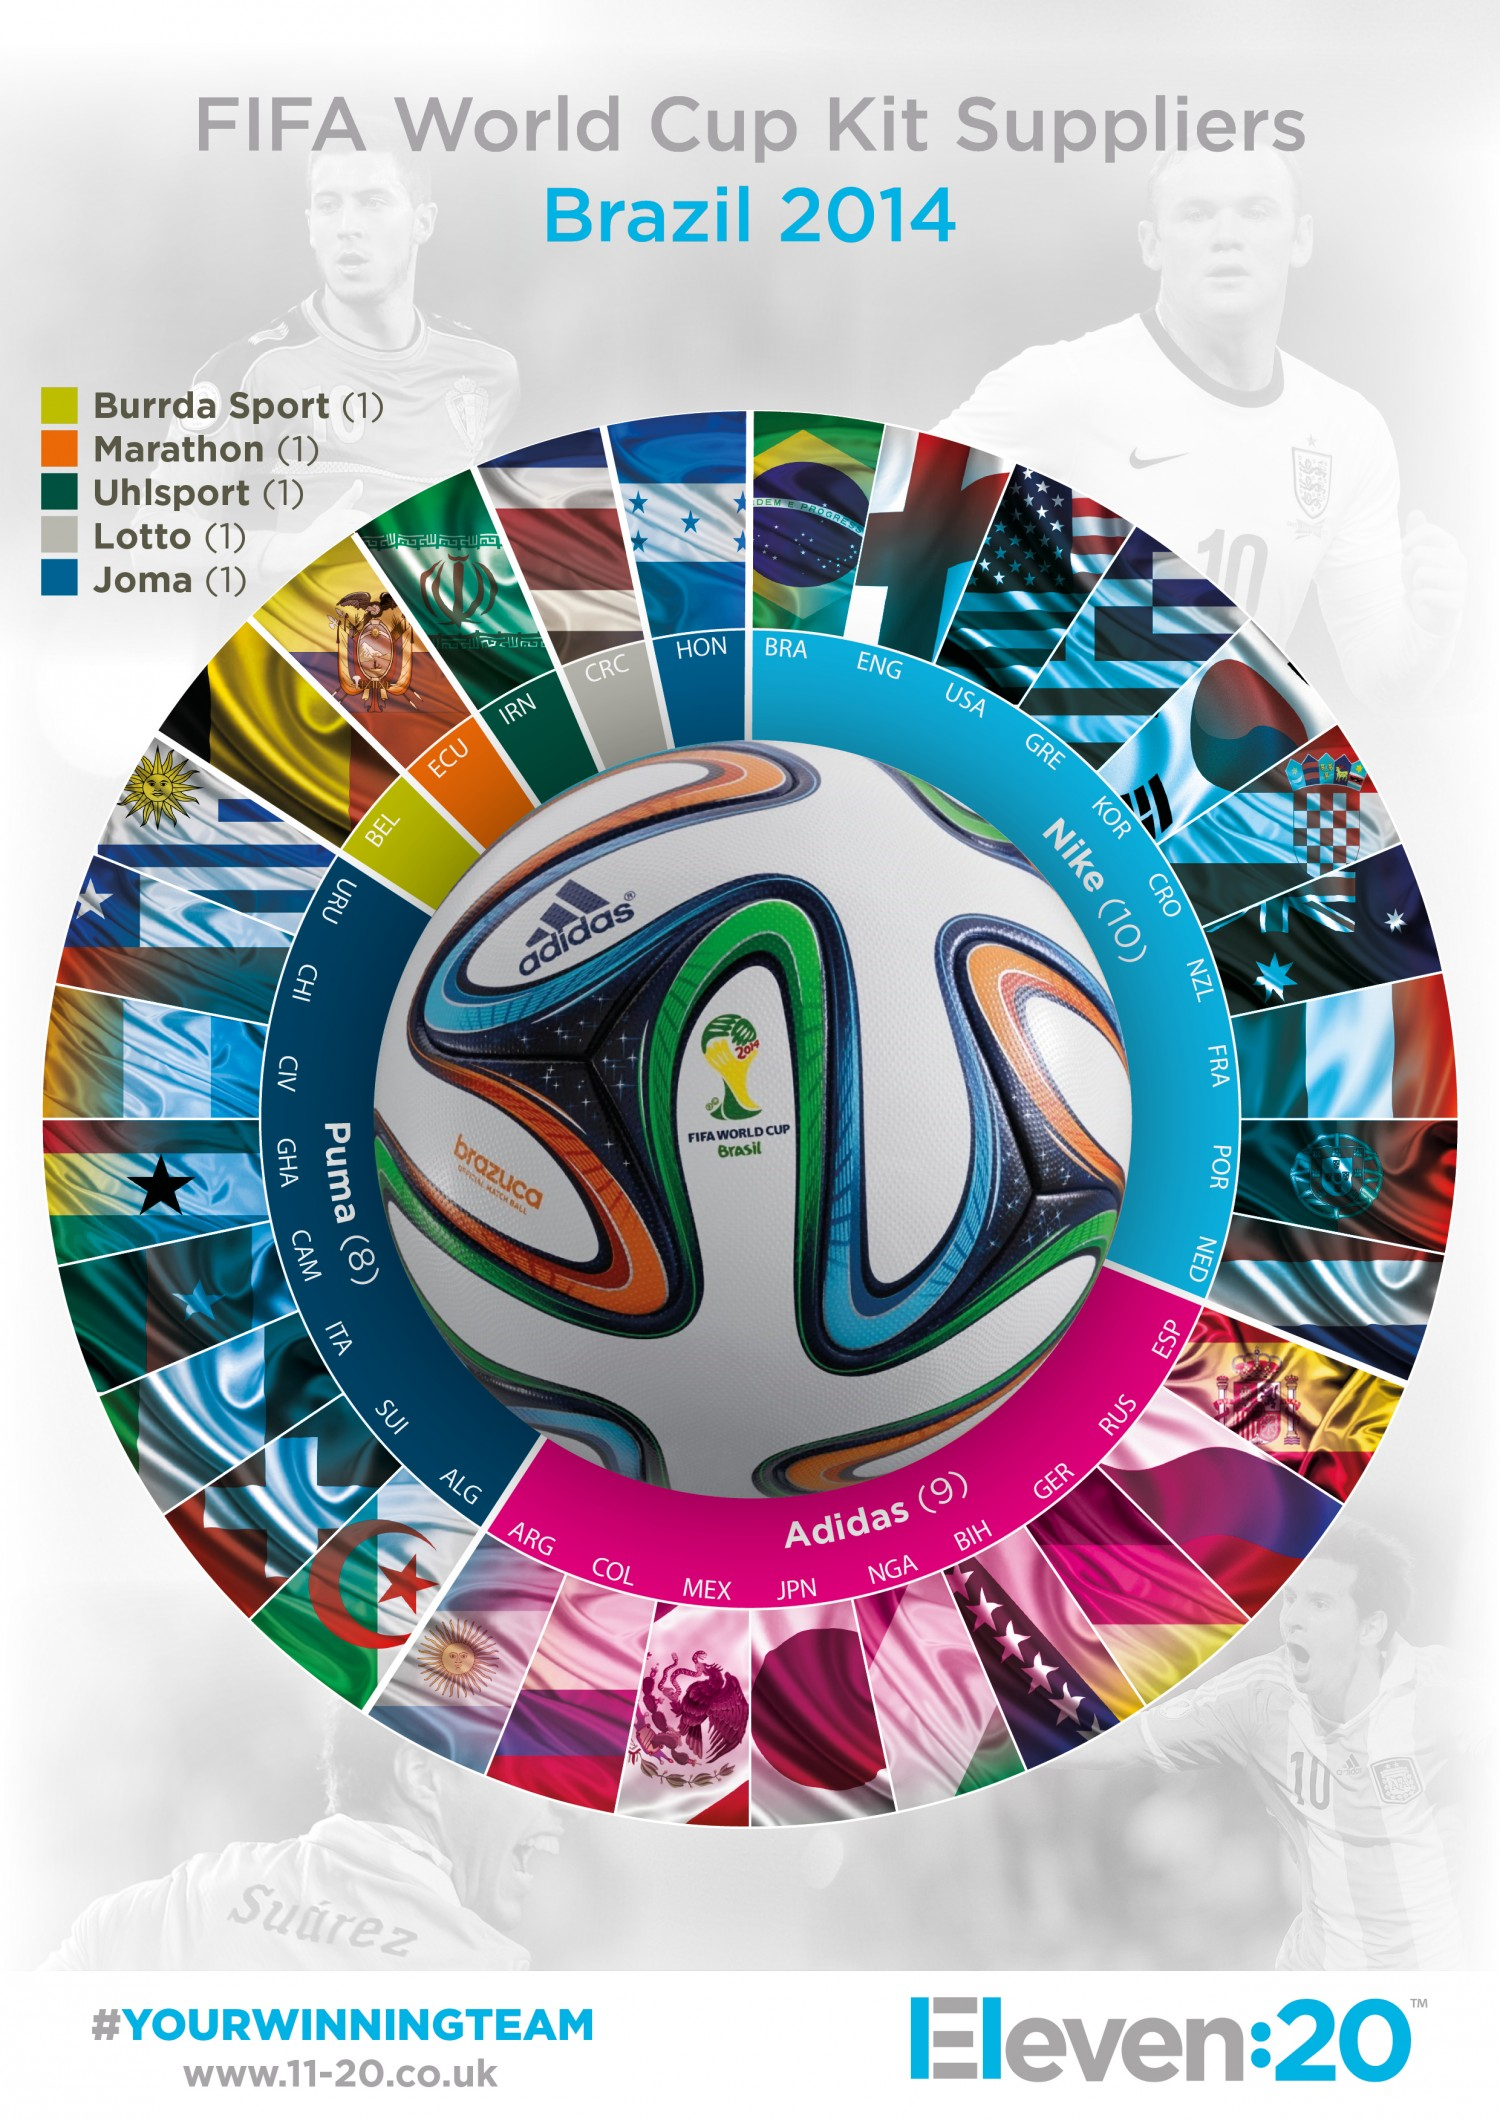 fifa-world-cup-2014-brands-and-nations-infographic_539042fca755e_w1500